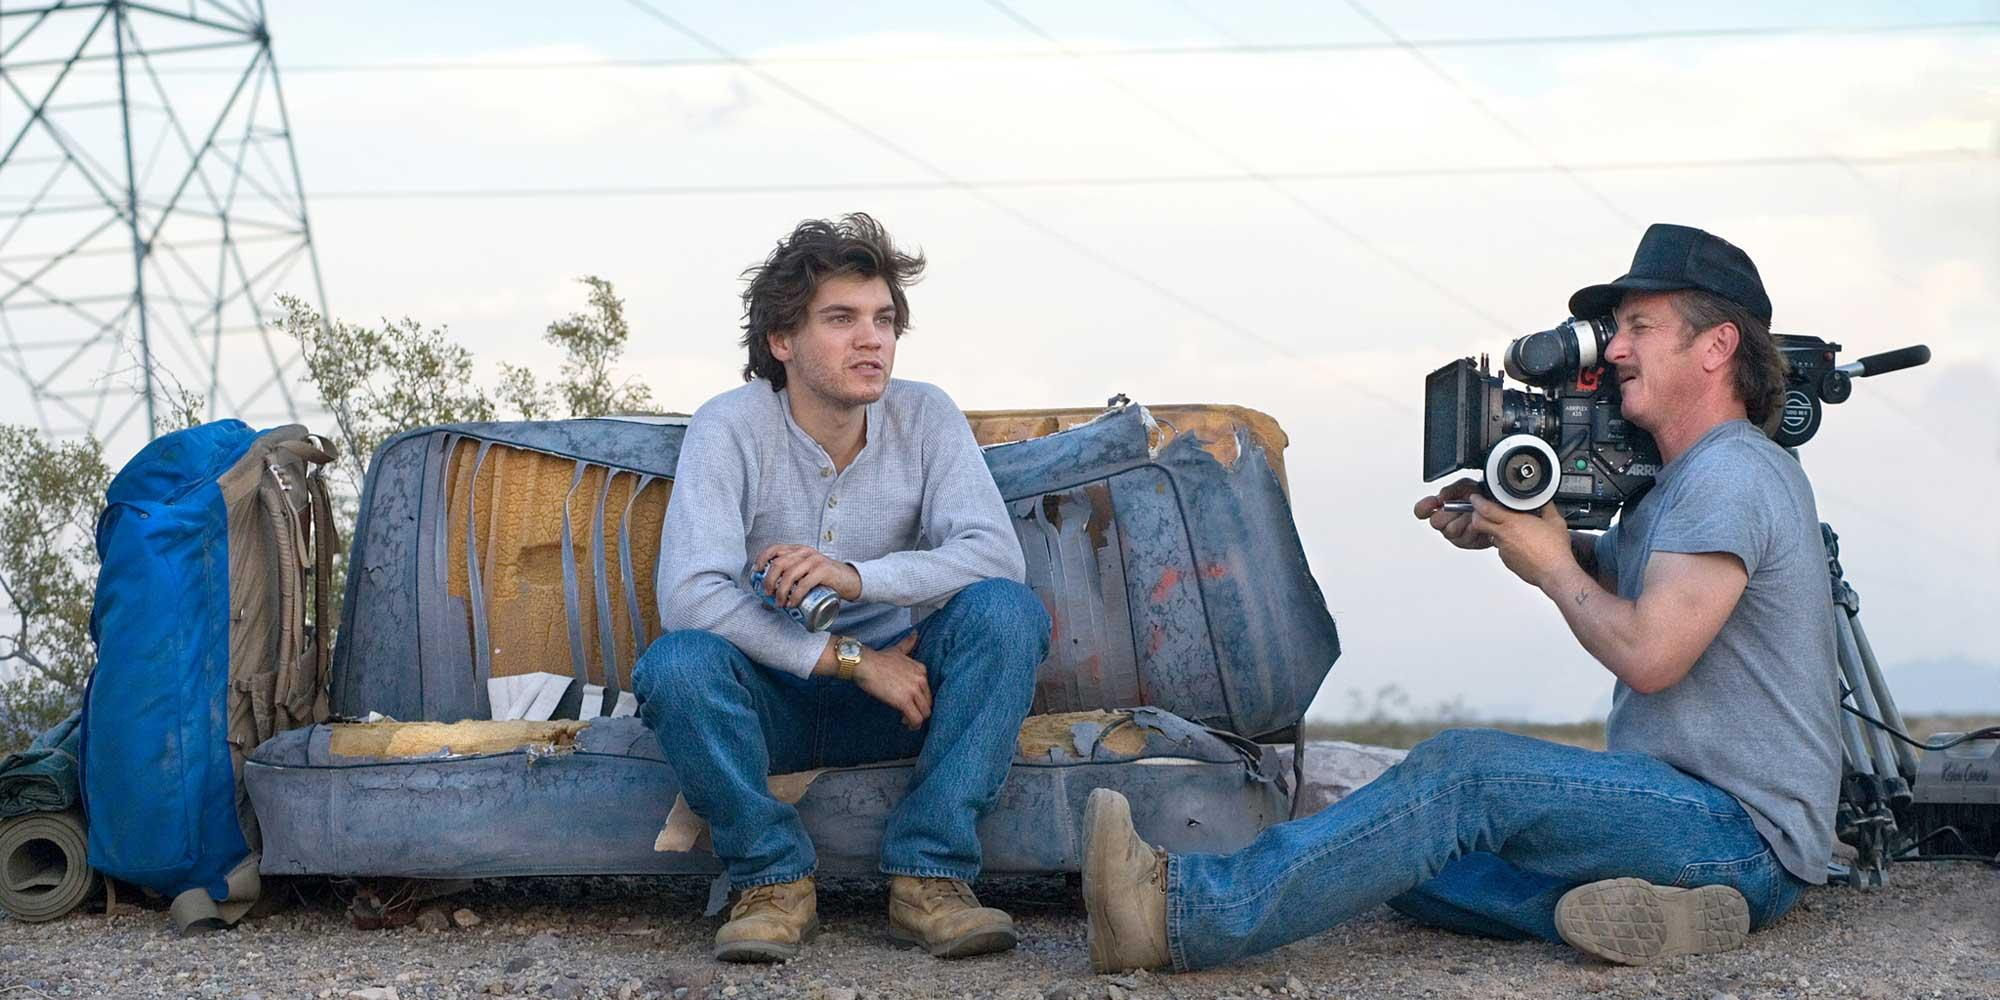 Penn films Emile Hirsch for Into the Wild. © paramount pictures 2020, from into the wild, now on on digital